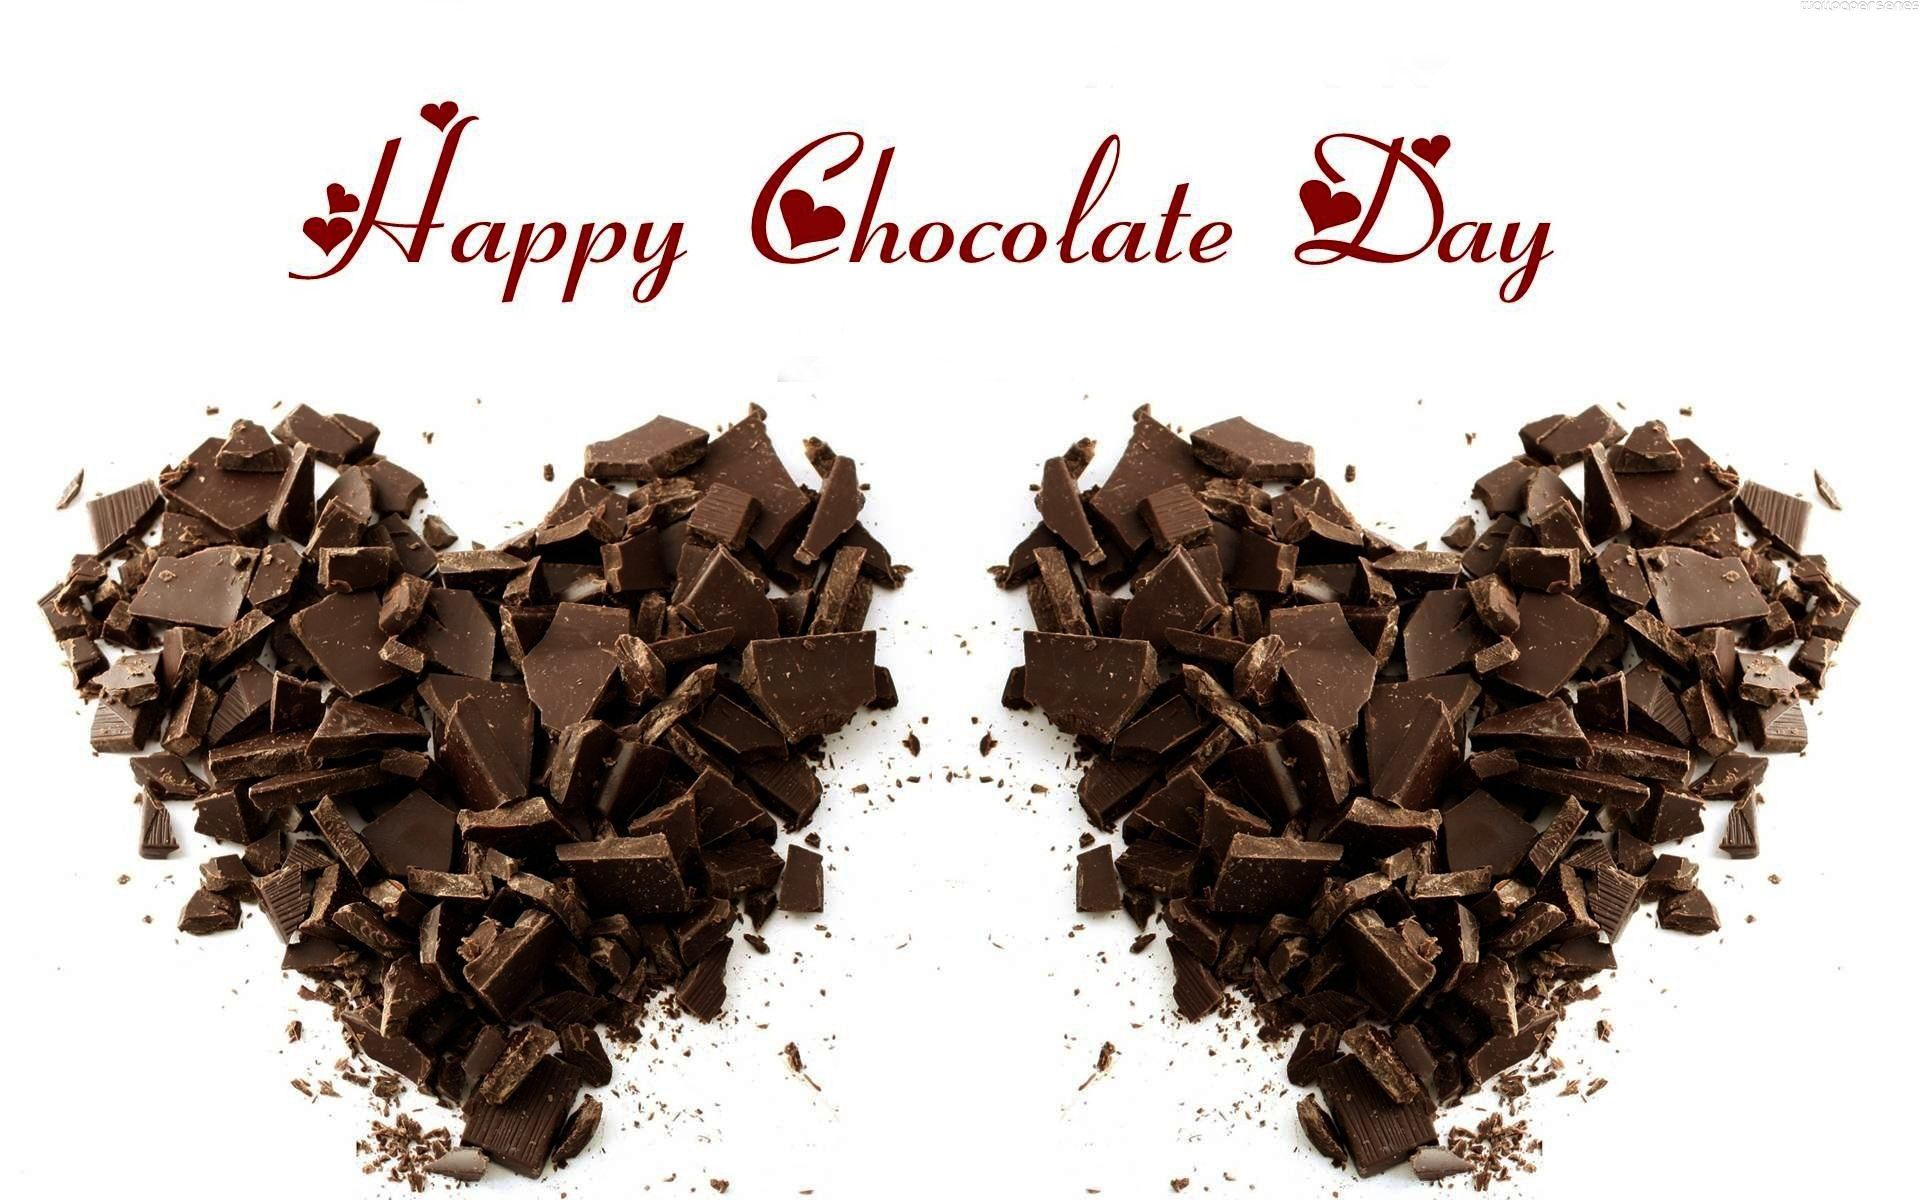 Chocolate Day Wallpapers for Mobile Desktop CGfrog 1920x1200